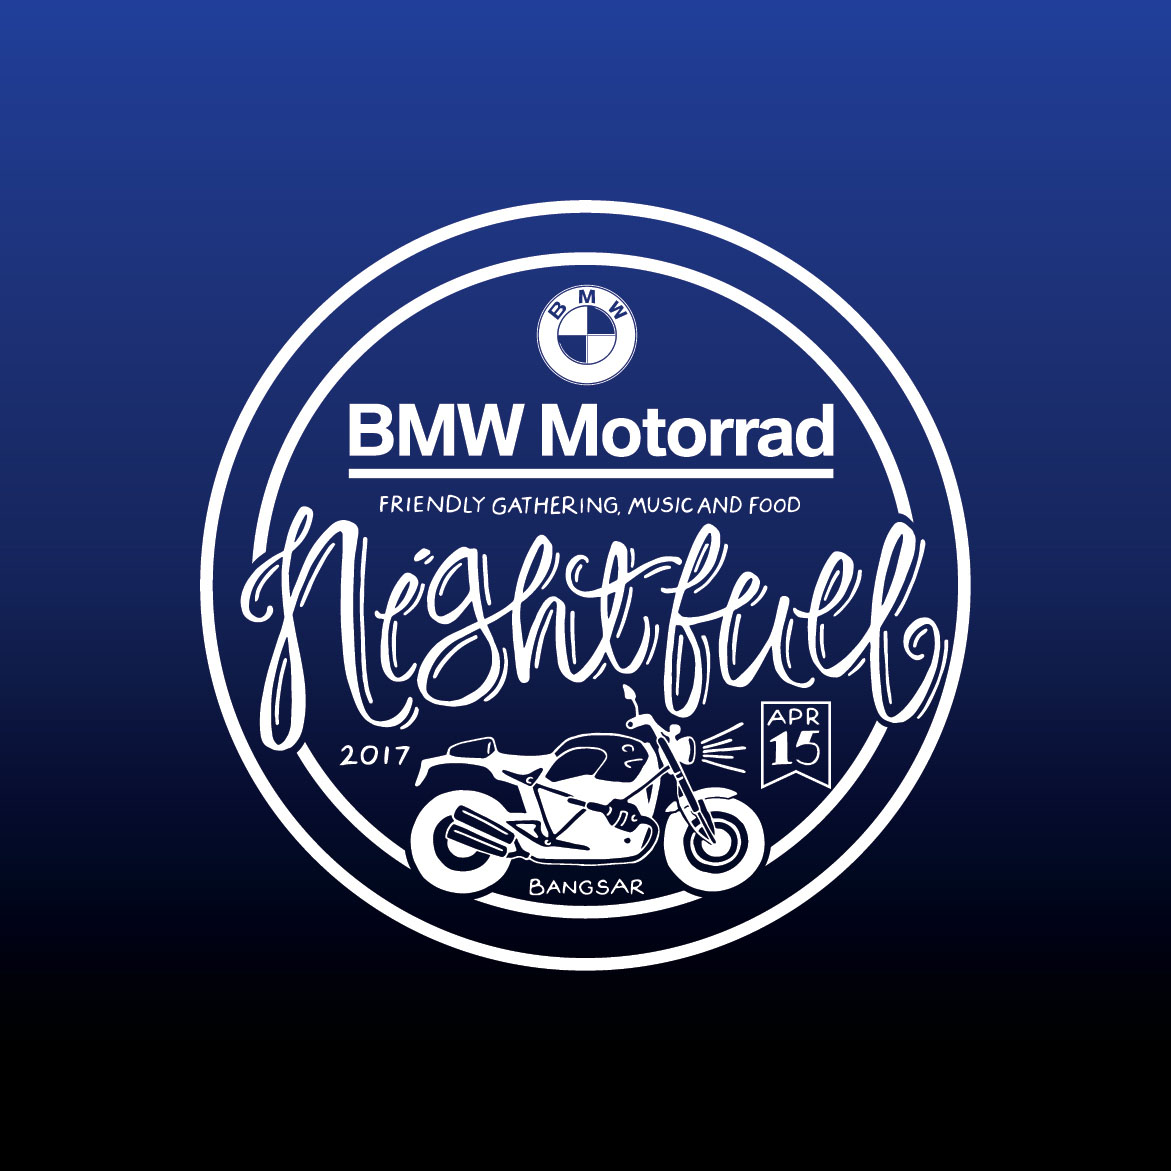 Bmw Motorrad Nightfuel Event Celebrated Making Life A Ride With Over 400 Motorcycle